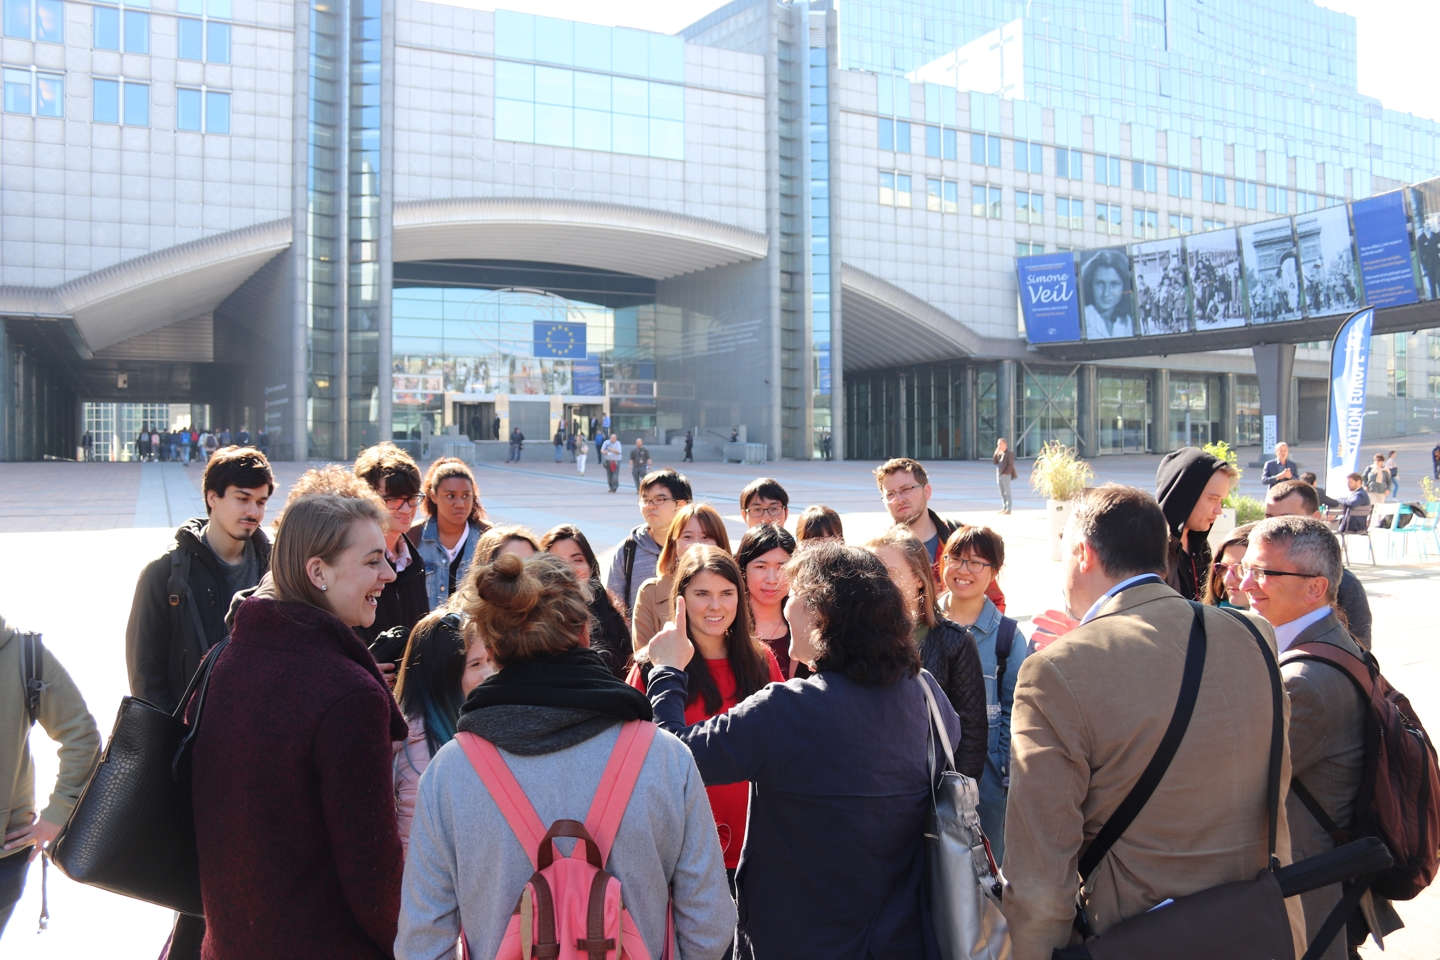 Students standing in front of the EU Parliament building